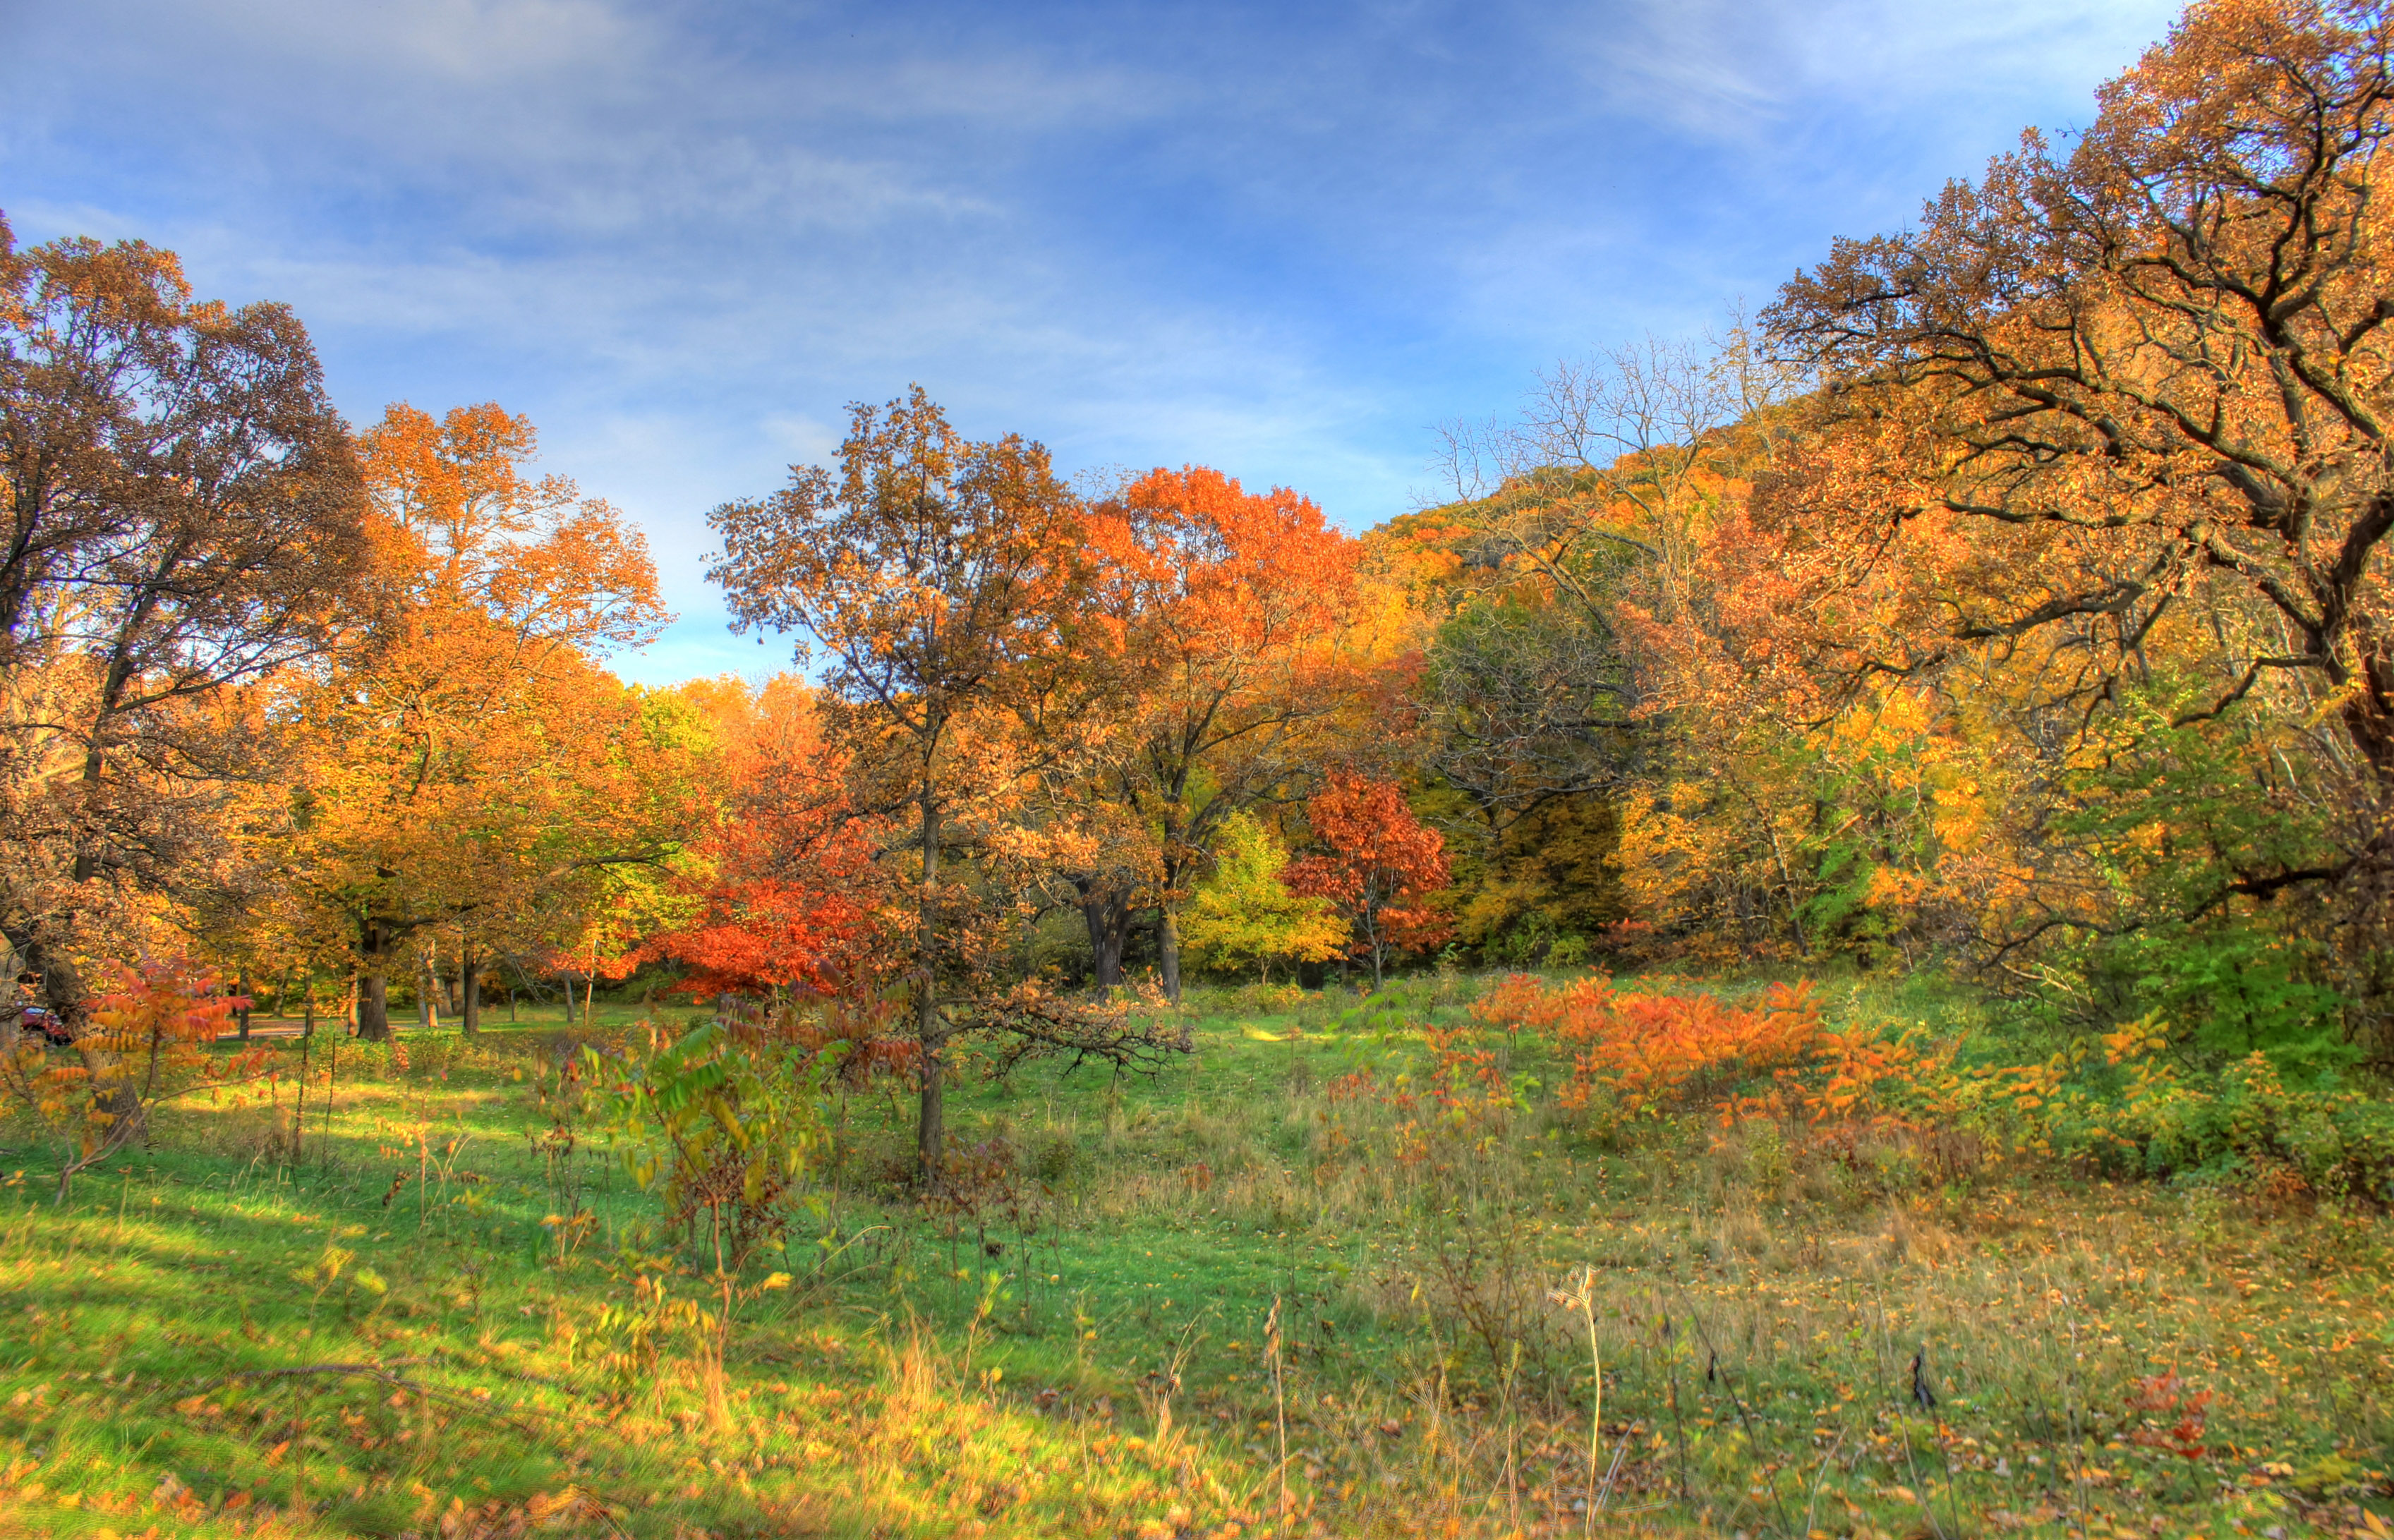 Great colorful autumn landscape at Perrot State Park ...